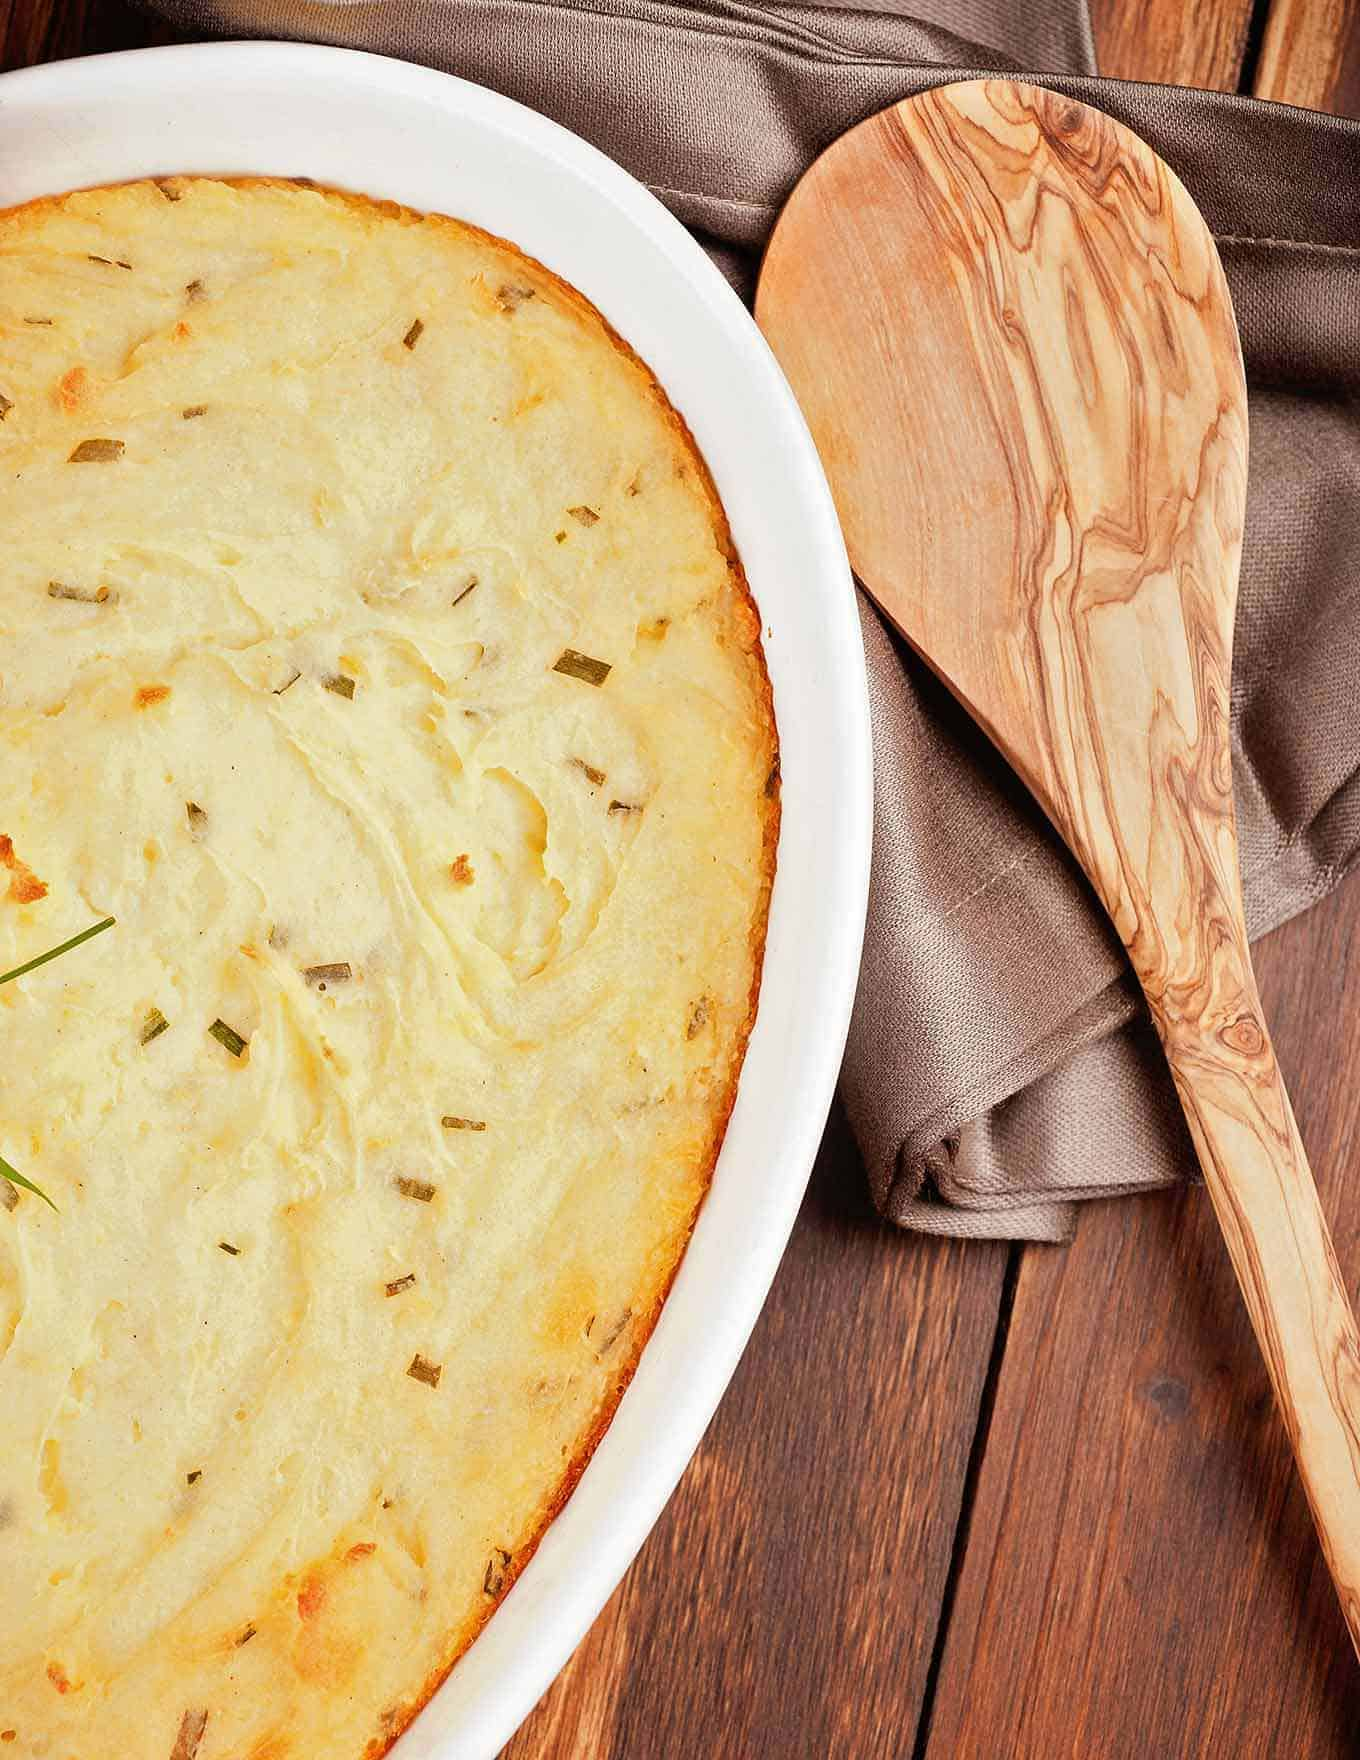 Whipped Potato Casserole w/Sour Cream and Chives